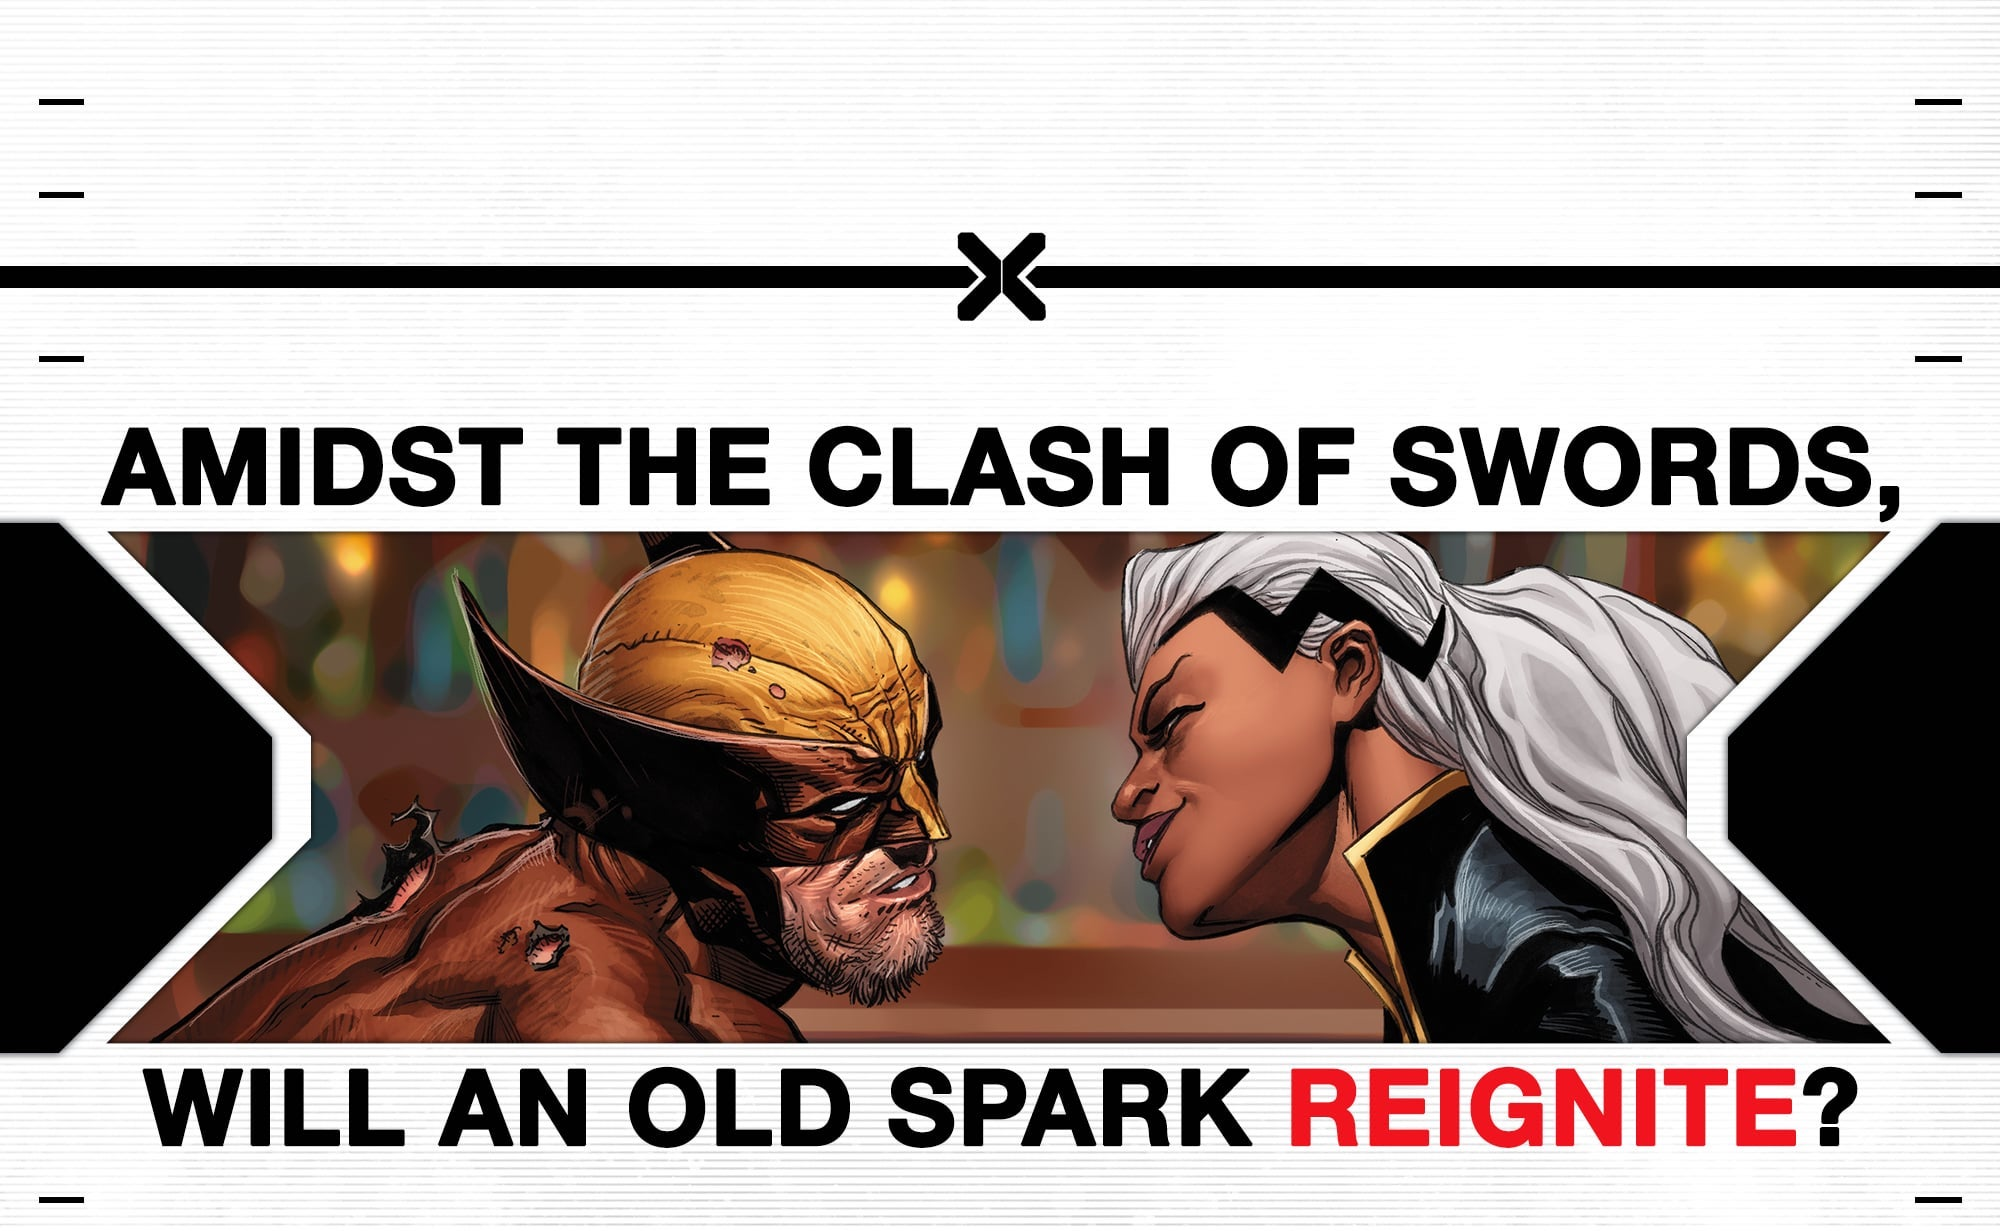 Marvel Comics teases Storm and Wolverine romance in 'X of Swords' teaser